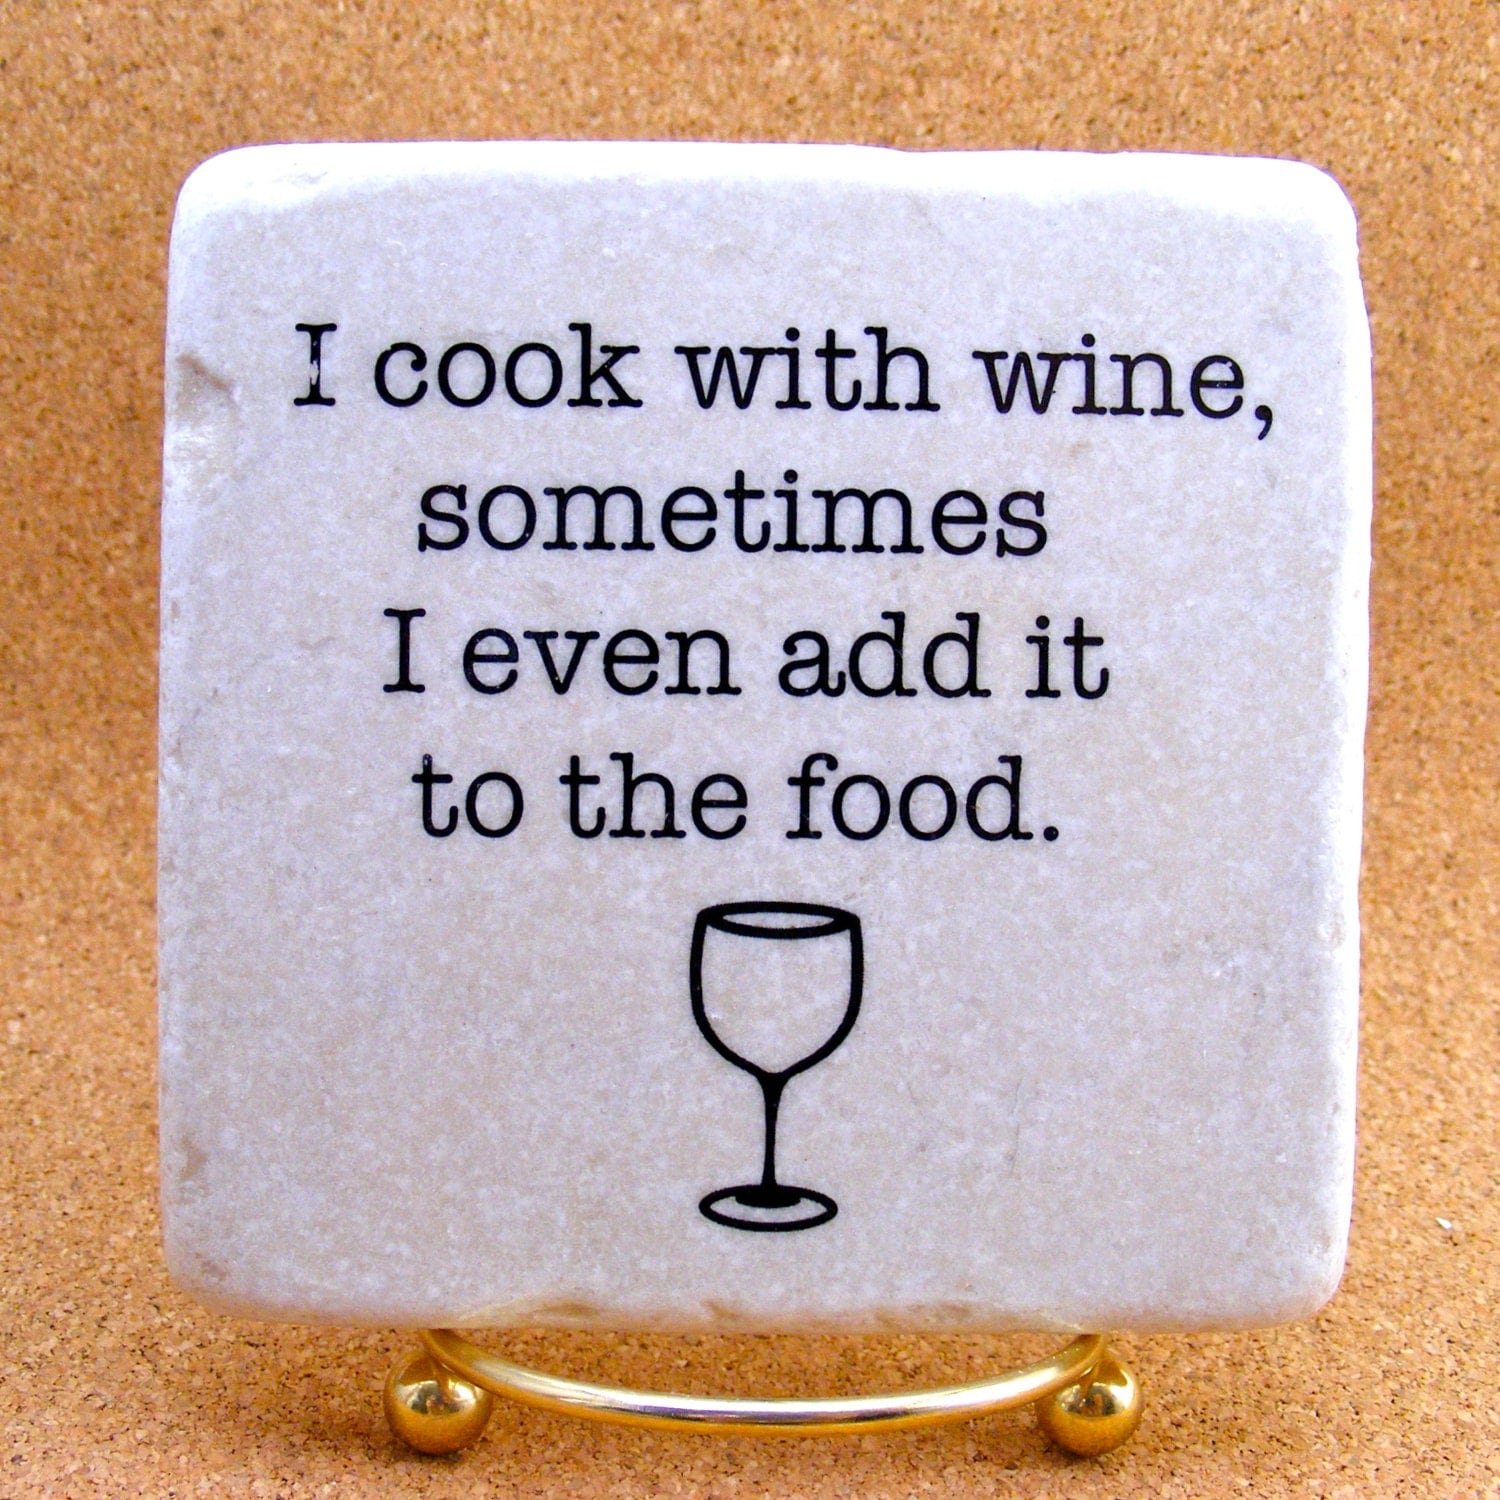 Misery Loves Company Quotes: Funny Witty Wine Drinker Decorative Tile Quote Marble Coaster